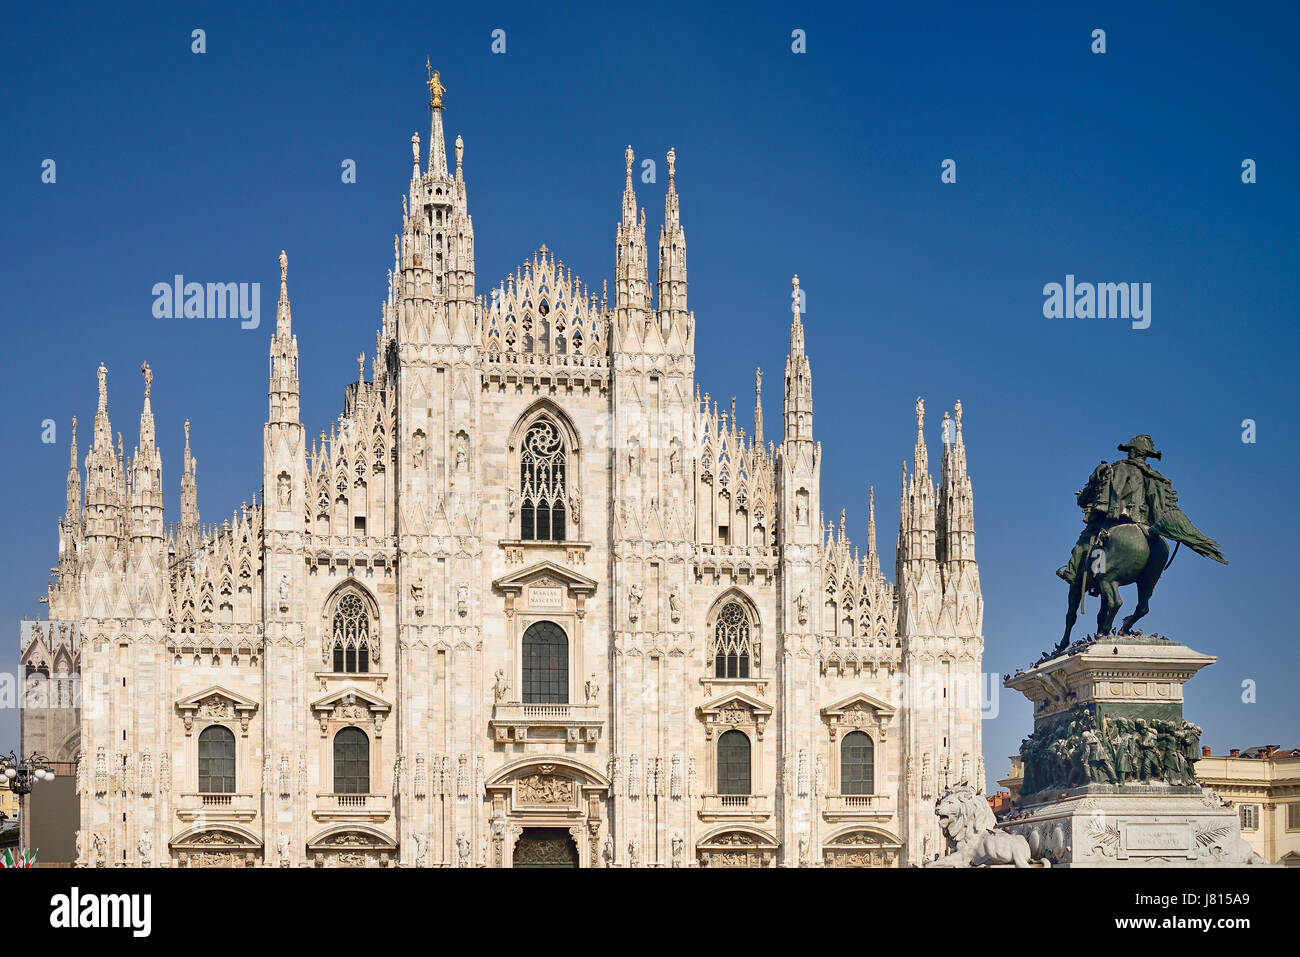 Italy, Lombardy, Milan. Milan Duomo or Cathedral, A section of the facade with the statue of King Victor Emmanuel - Stock Image